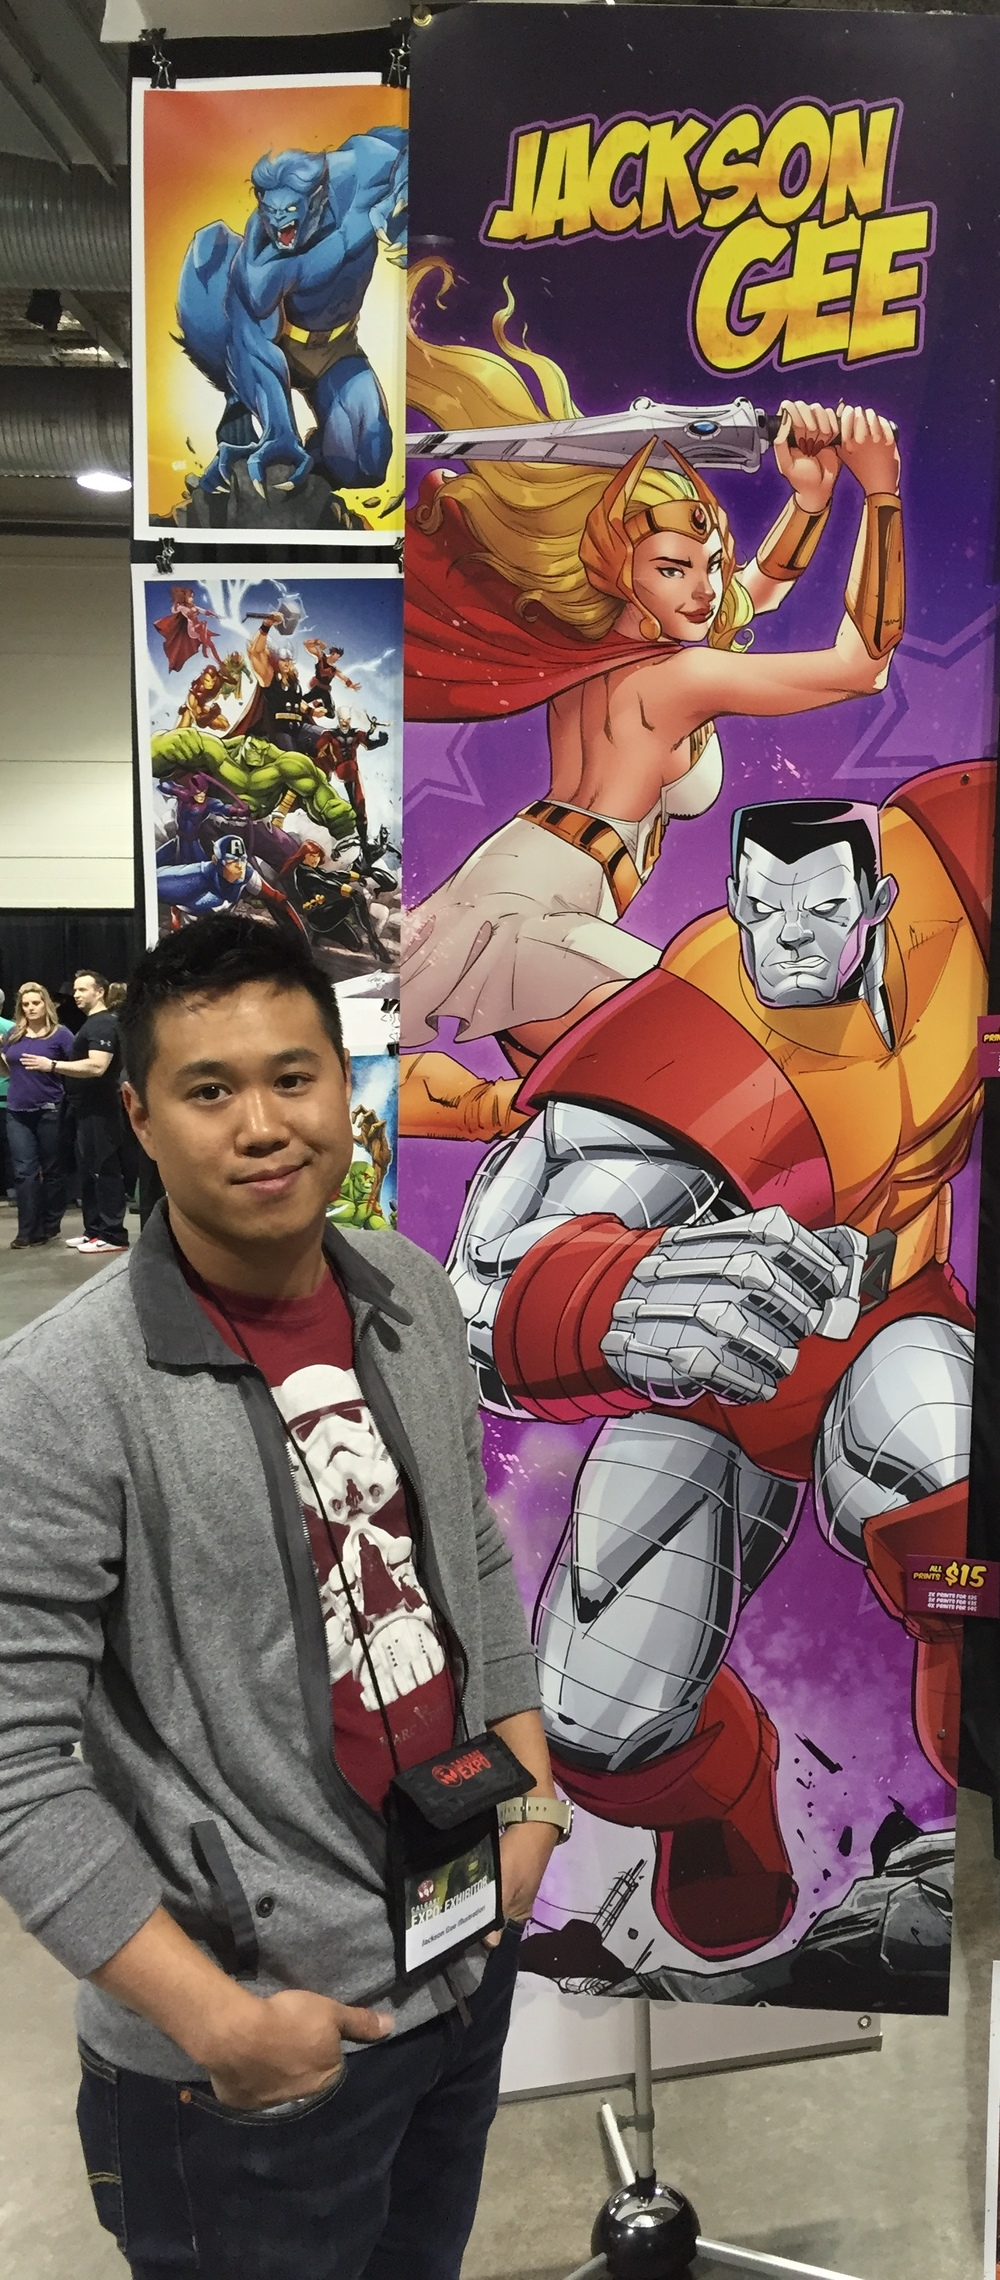 Jackson Gee at Calgary Expo 2016. (Photo credit: Chris Doucher/GeekNerdNet)